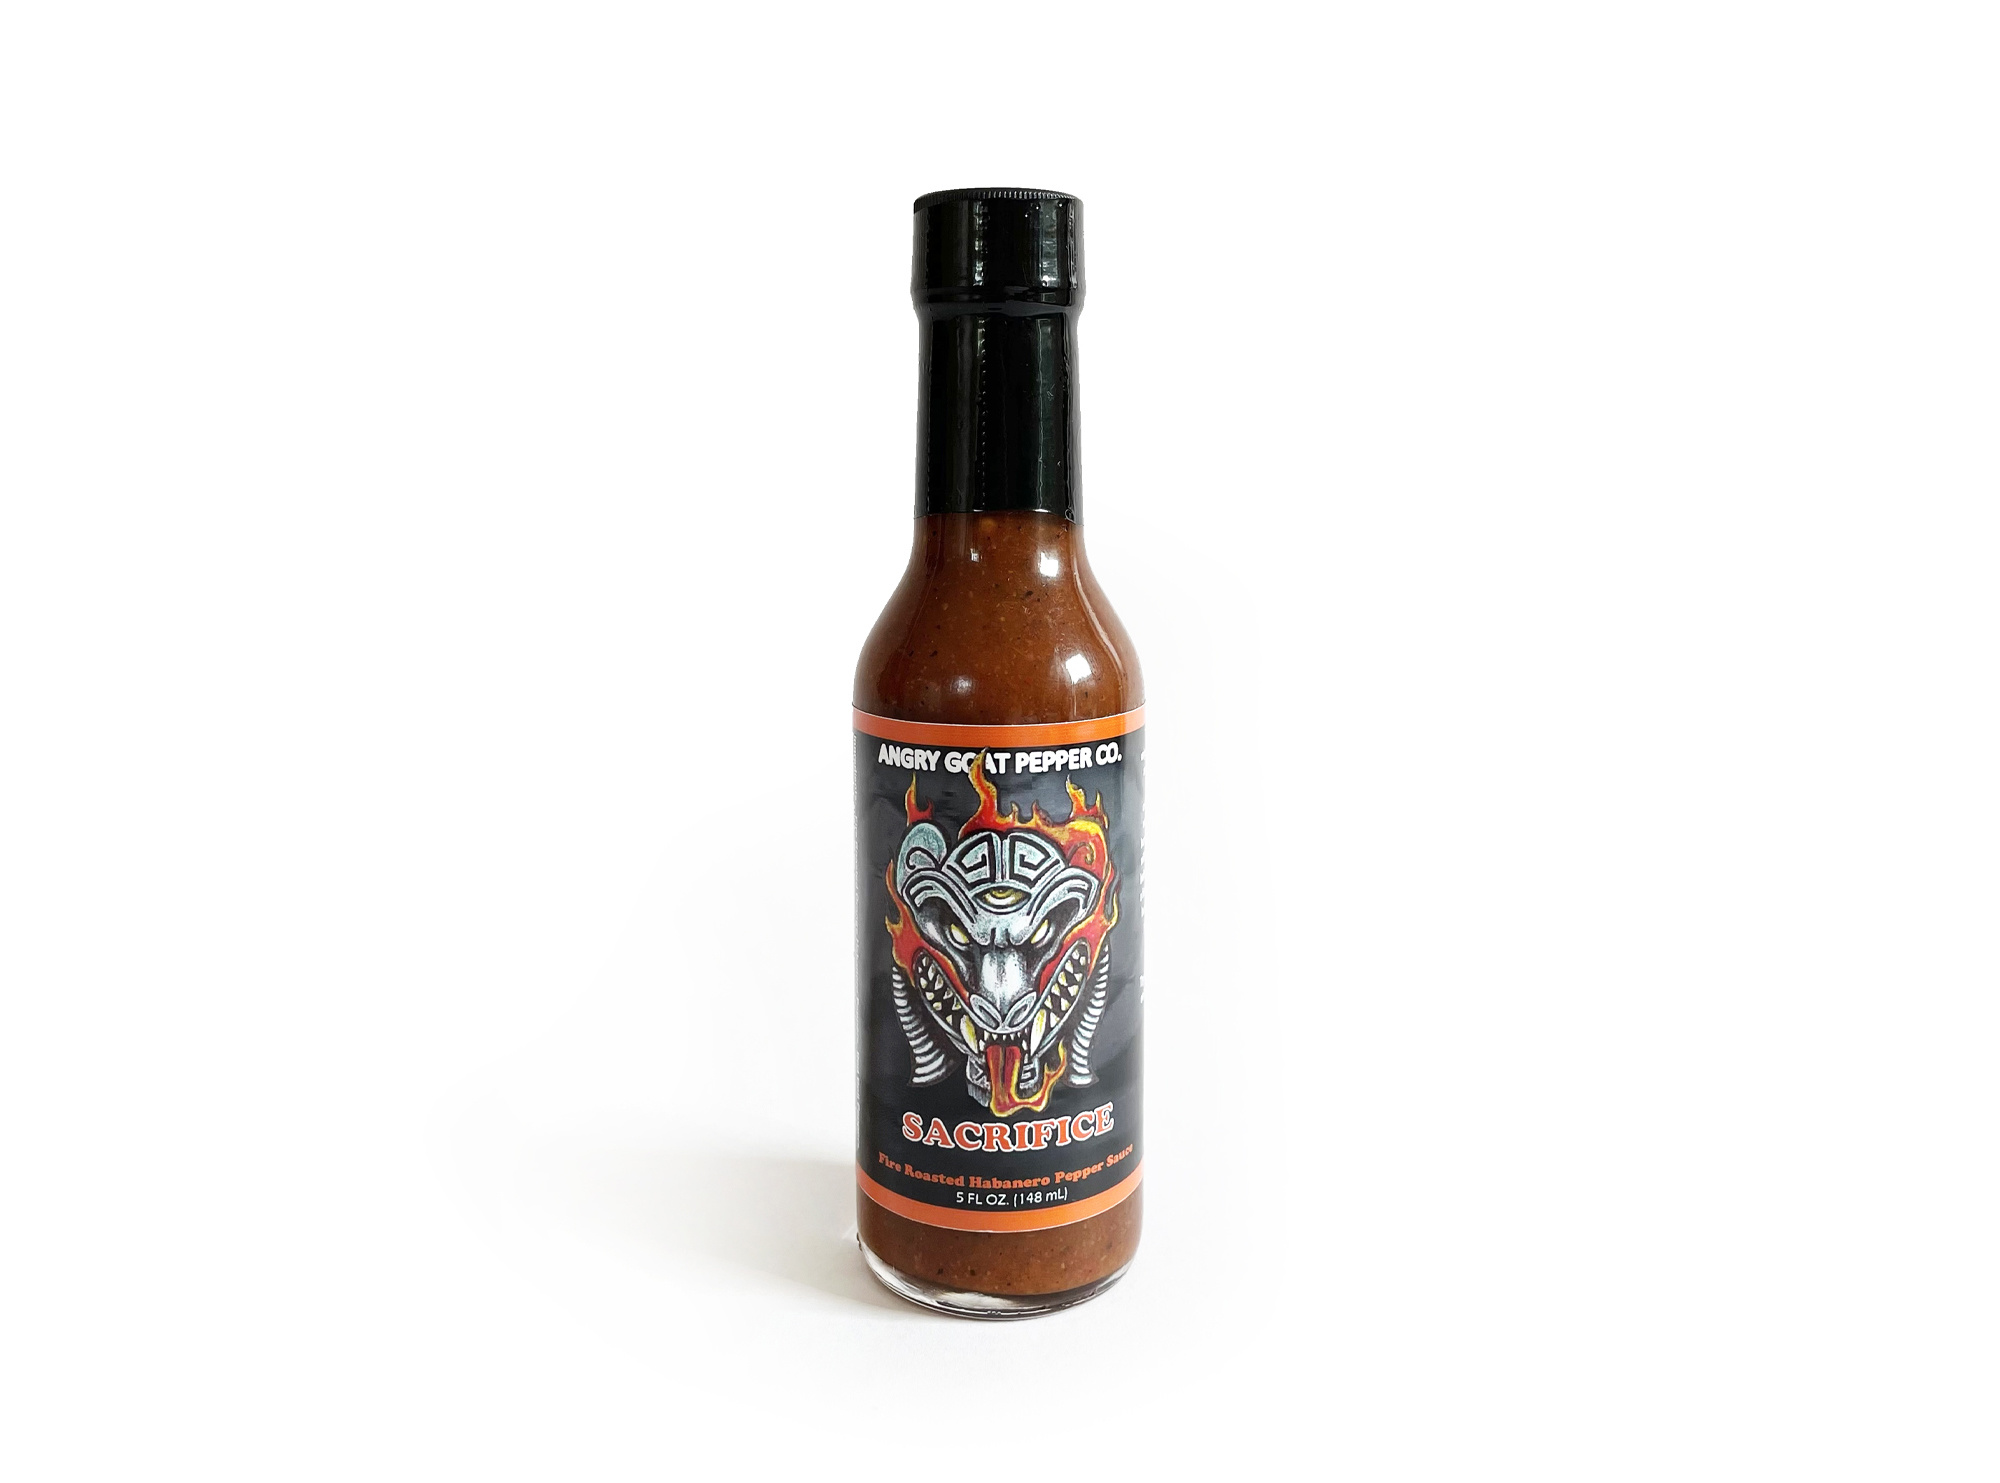 Angry Goat Pepper Co. Sacrifice Hot Sauce-1